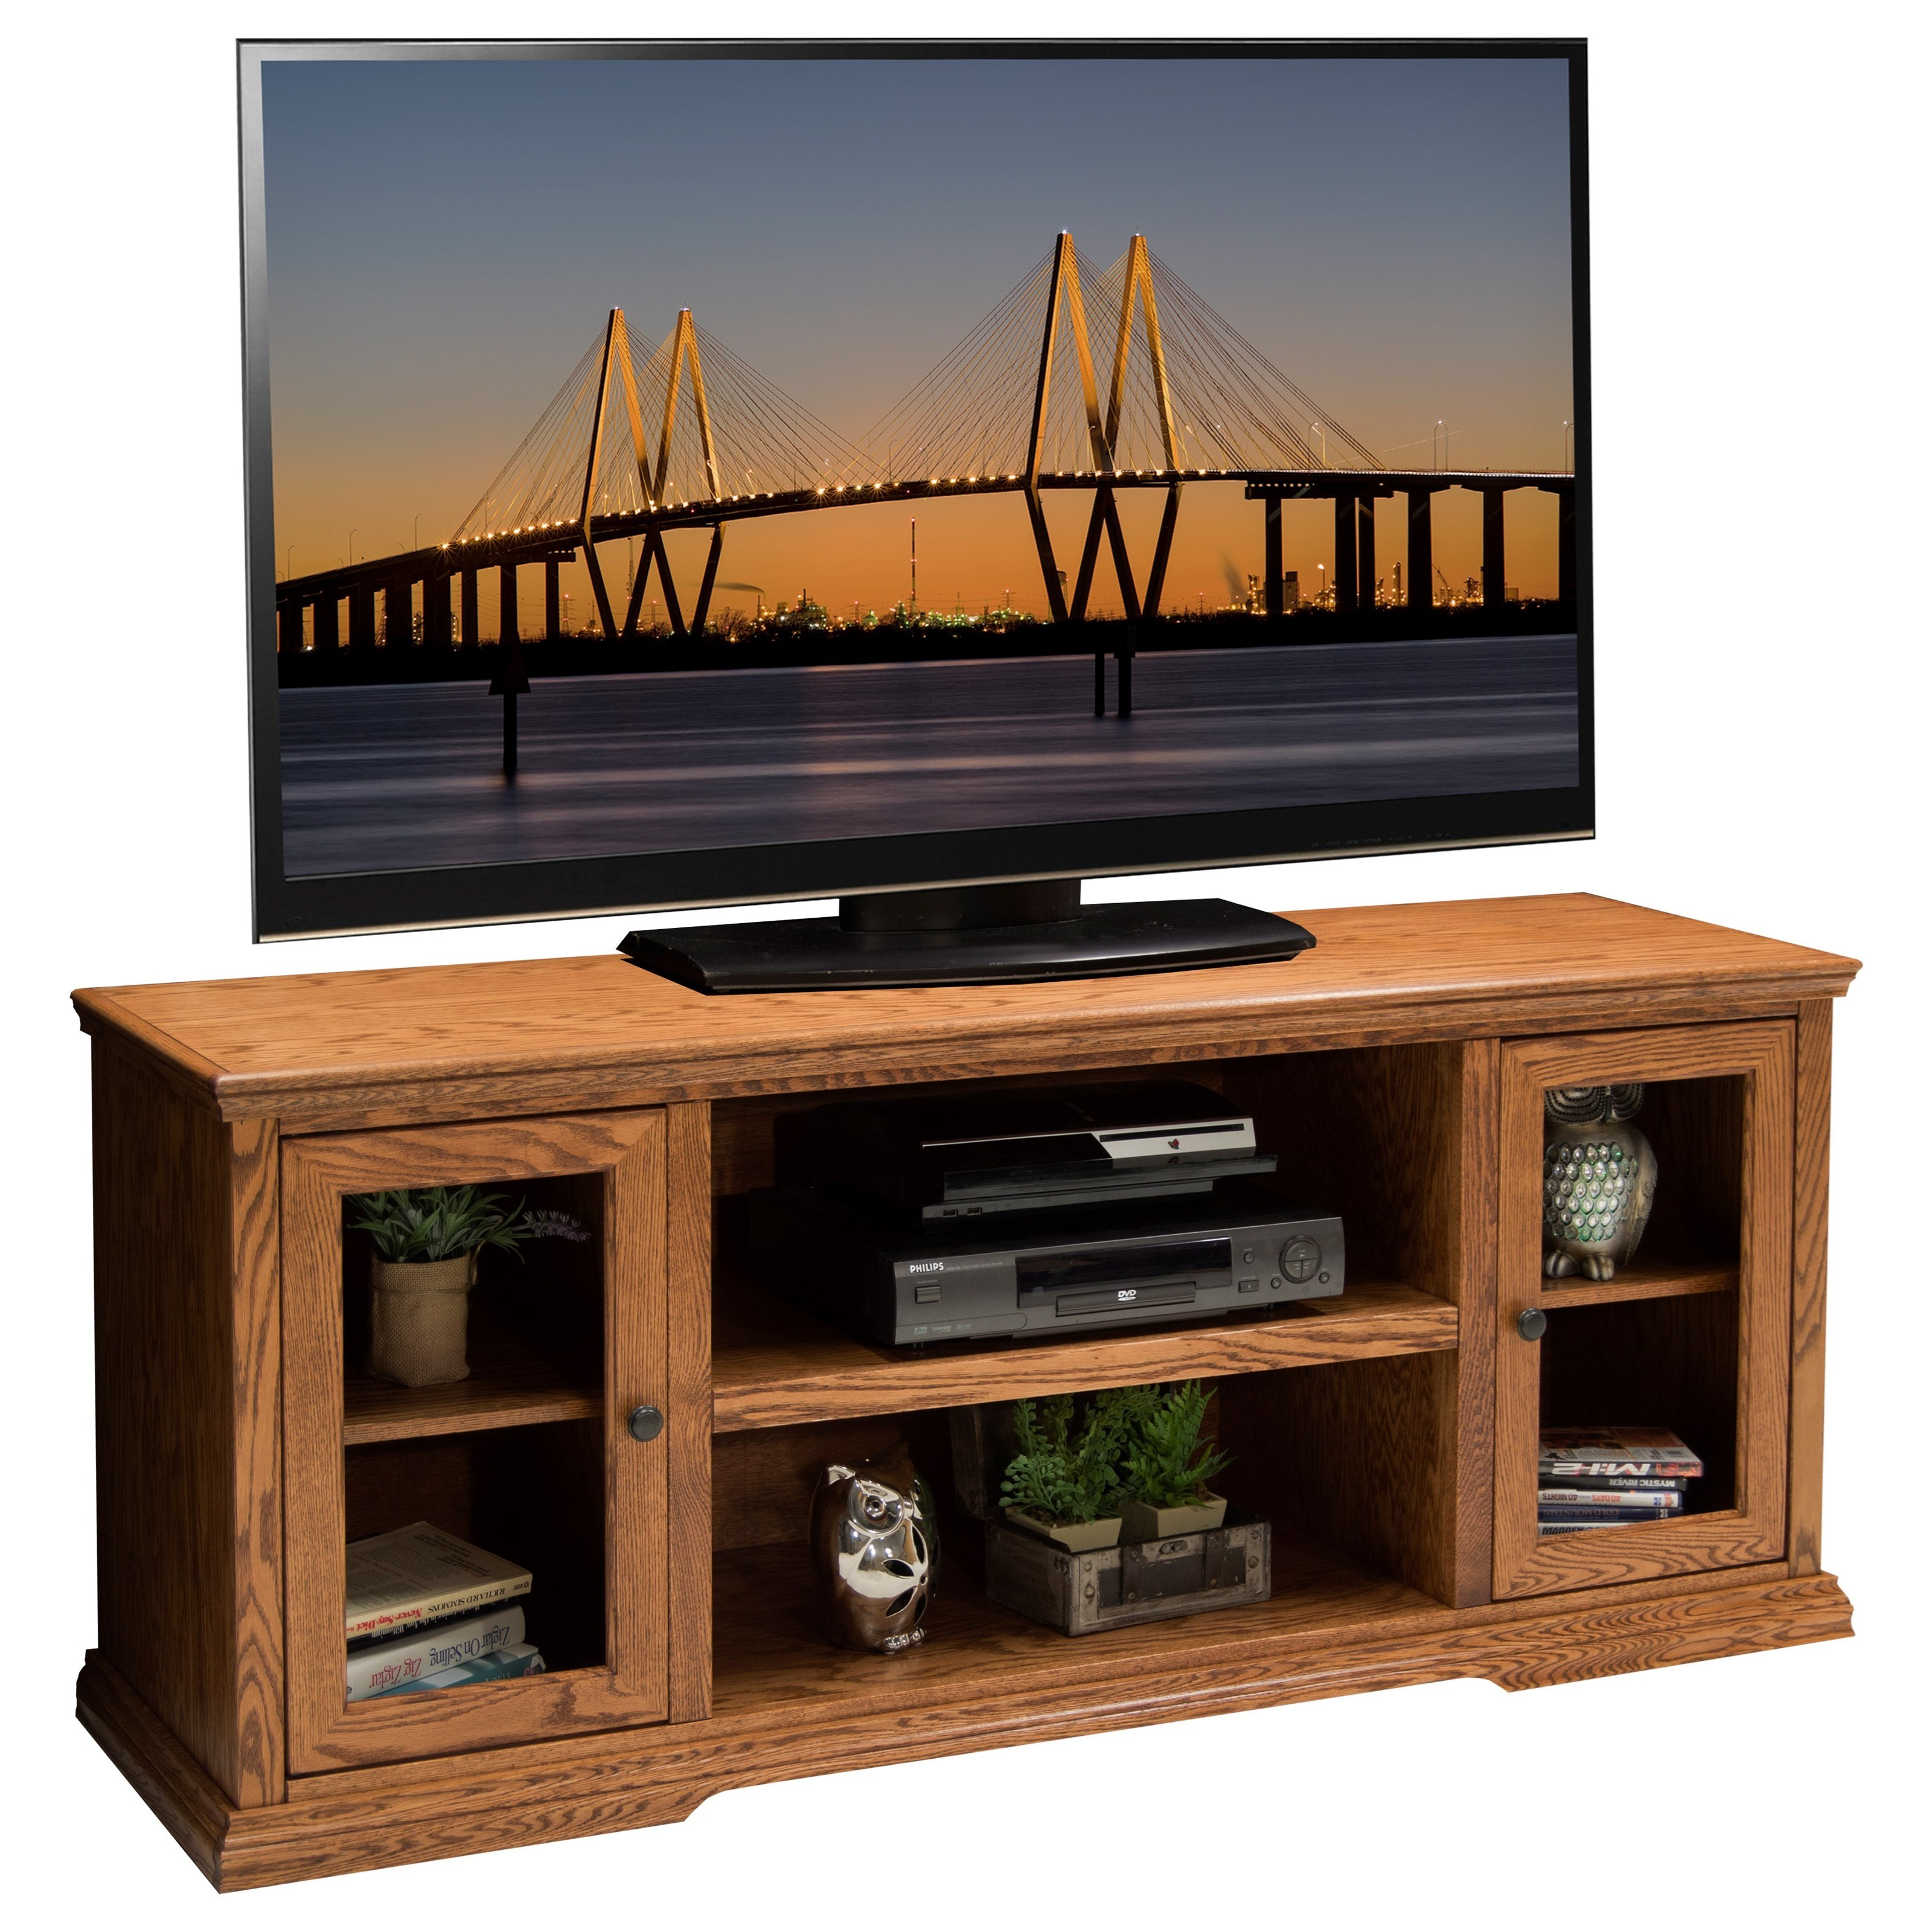 "Vendor 1356 Colonial Place 62"" TV Console - Item Number: CP1228.GDO"